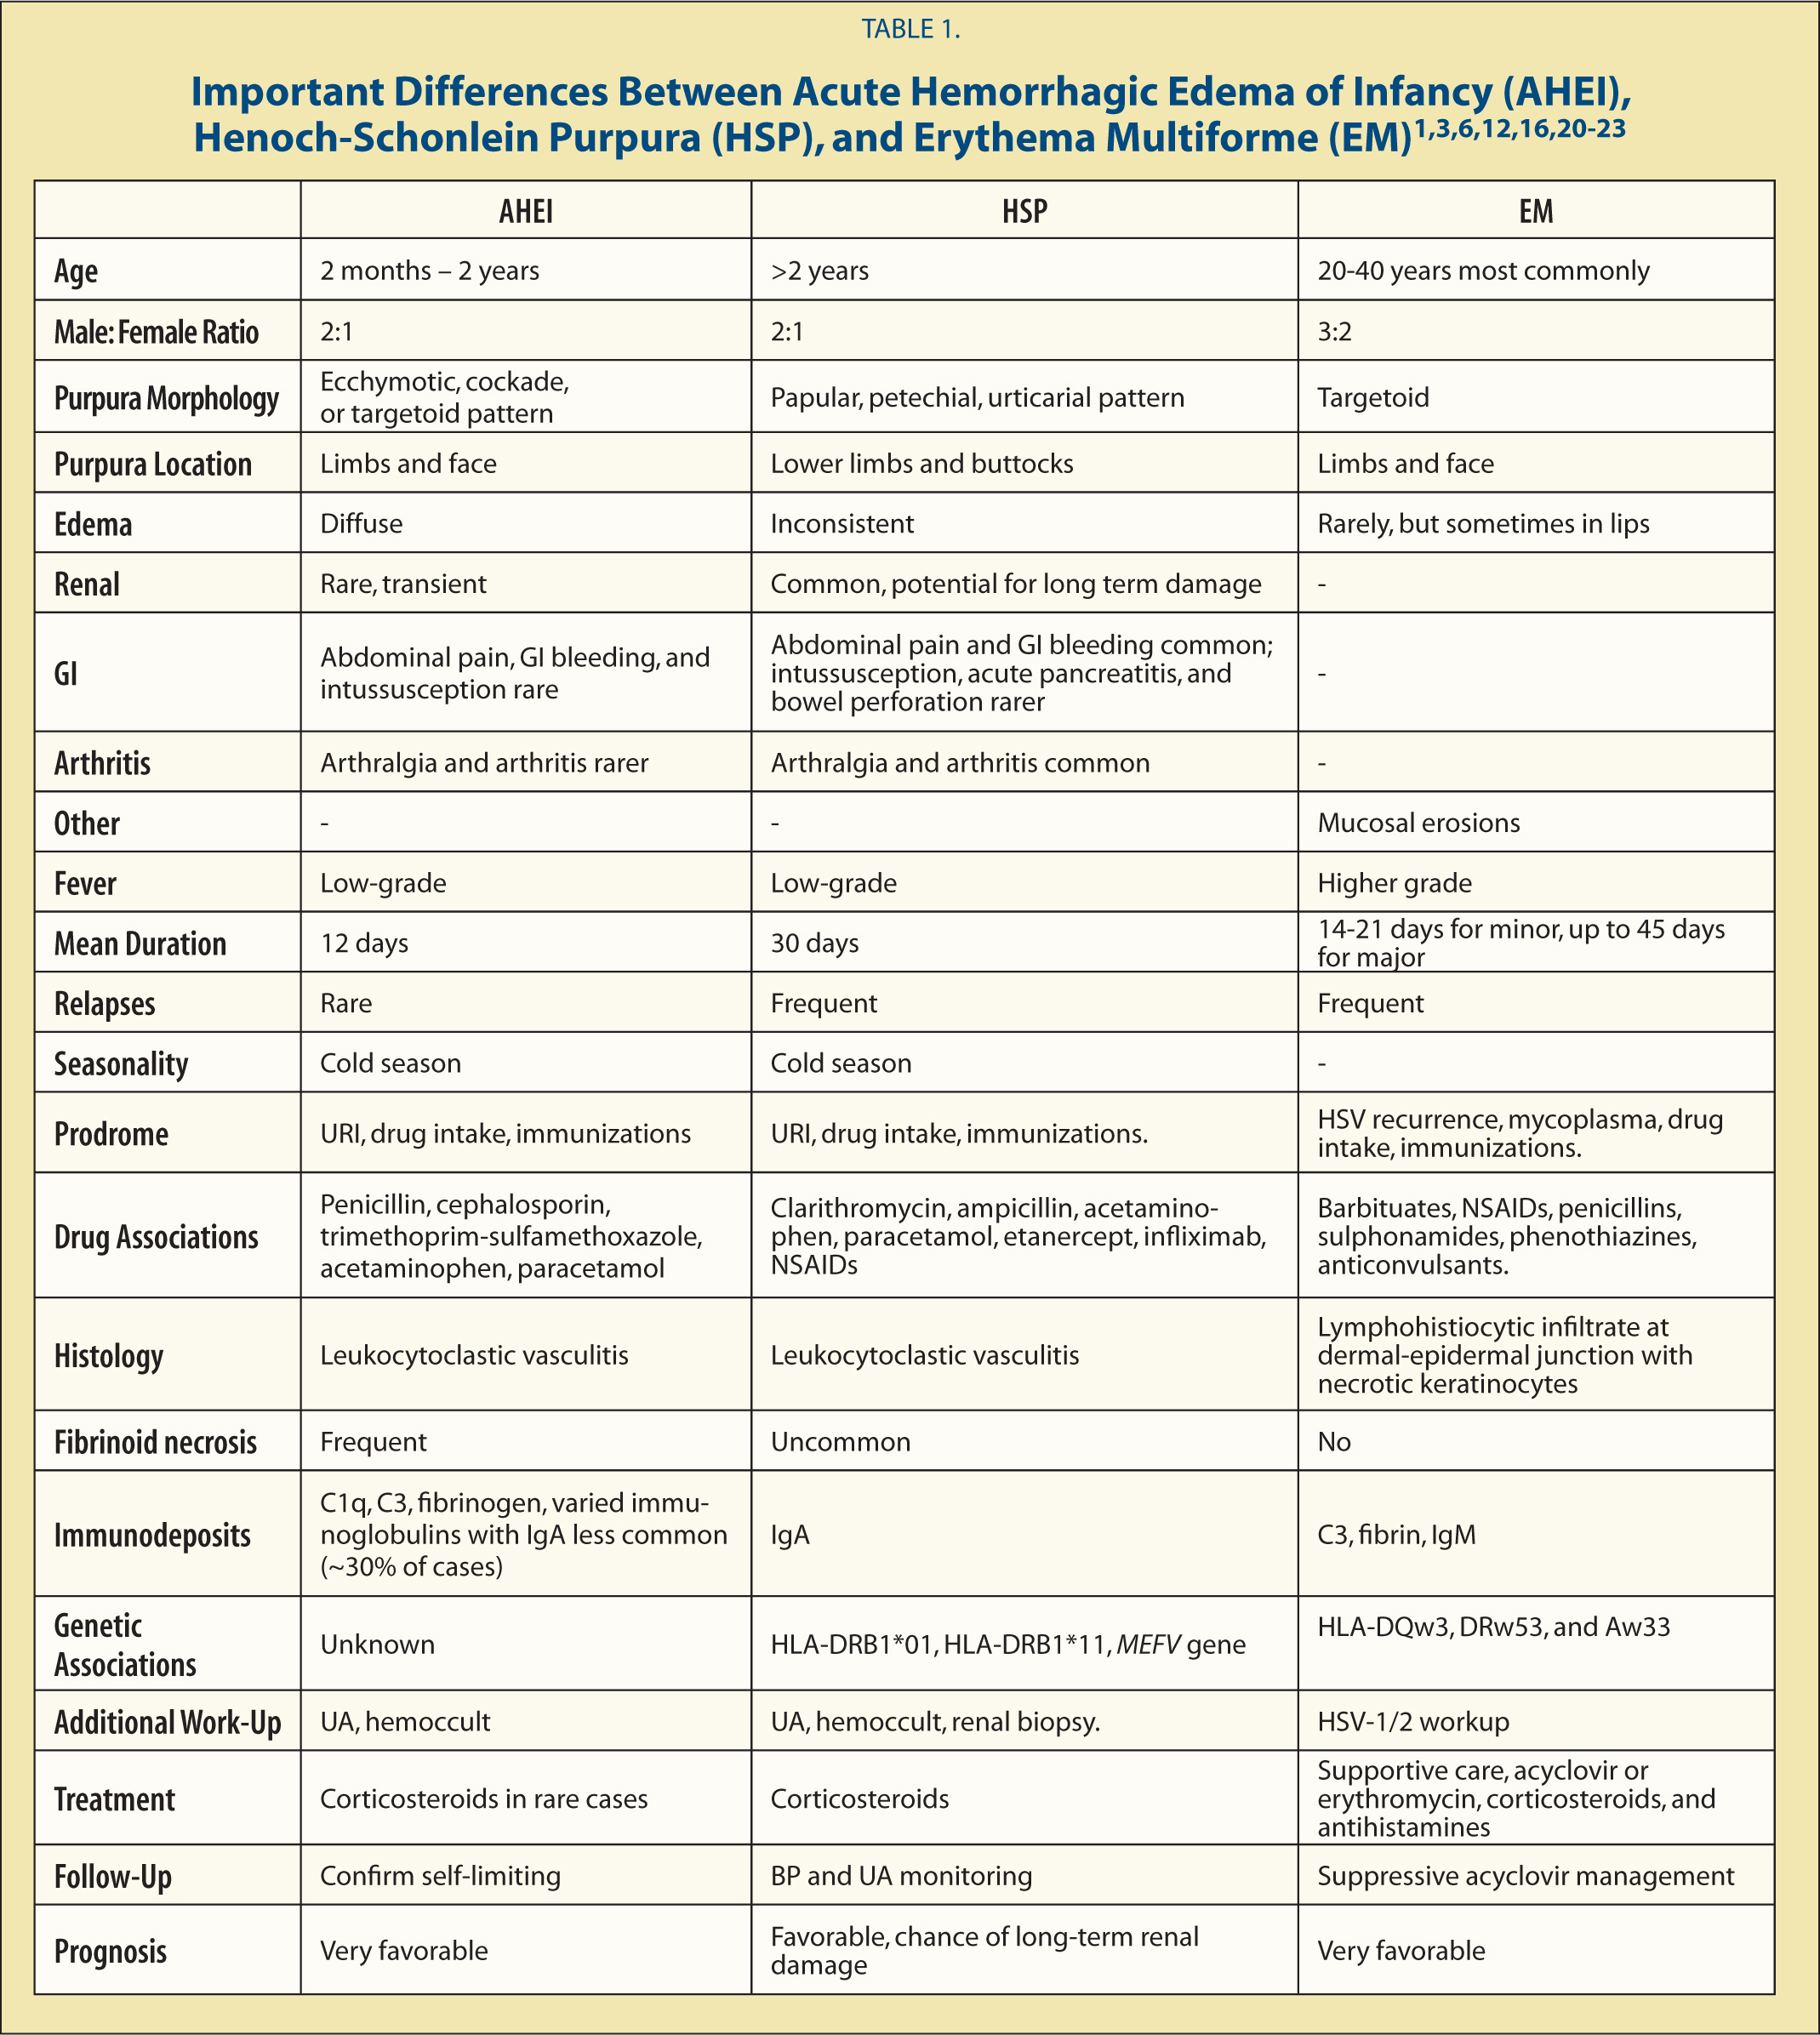 Important Differences Between Acute Hemorrhagic Edema of Infancy (AHEI), Henoch-Schonlein Purpura (HSP), and Erythema Multiforme (EM)1,3,6,12,16,20–23